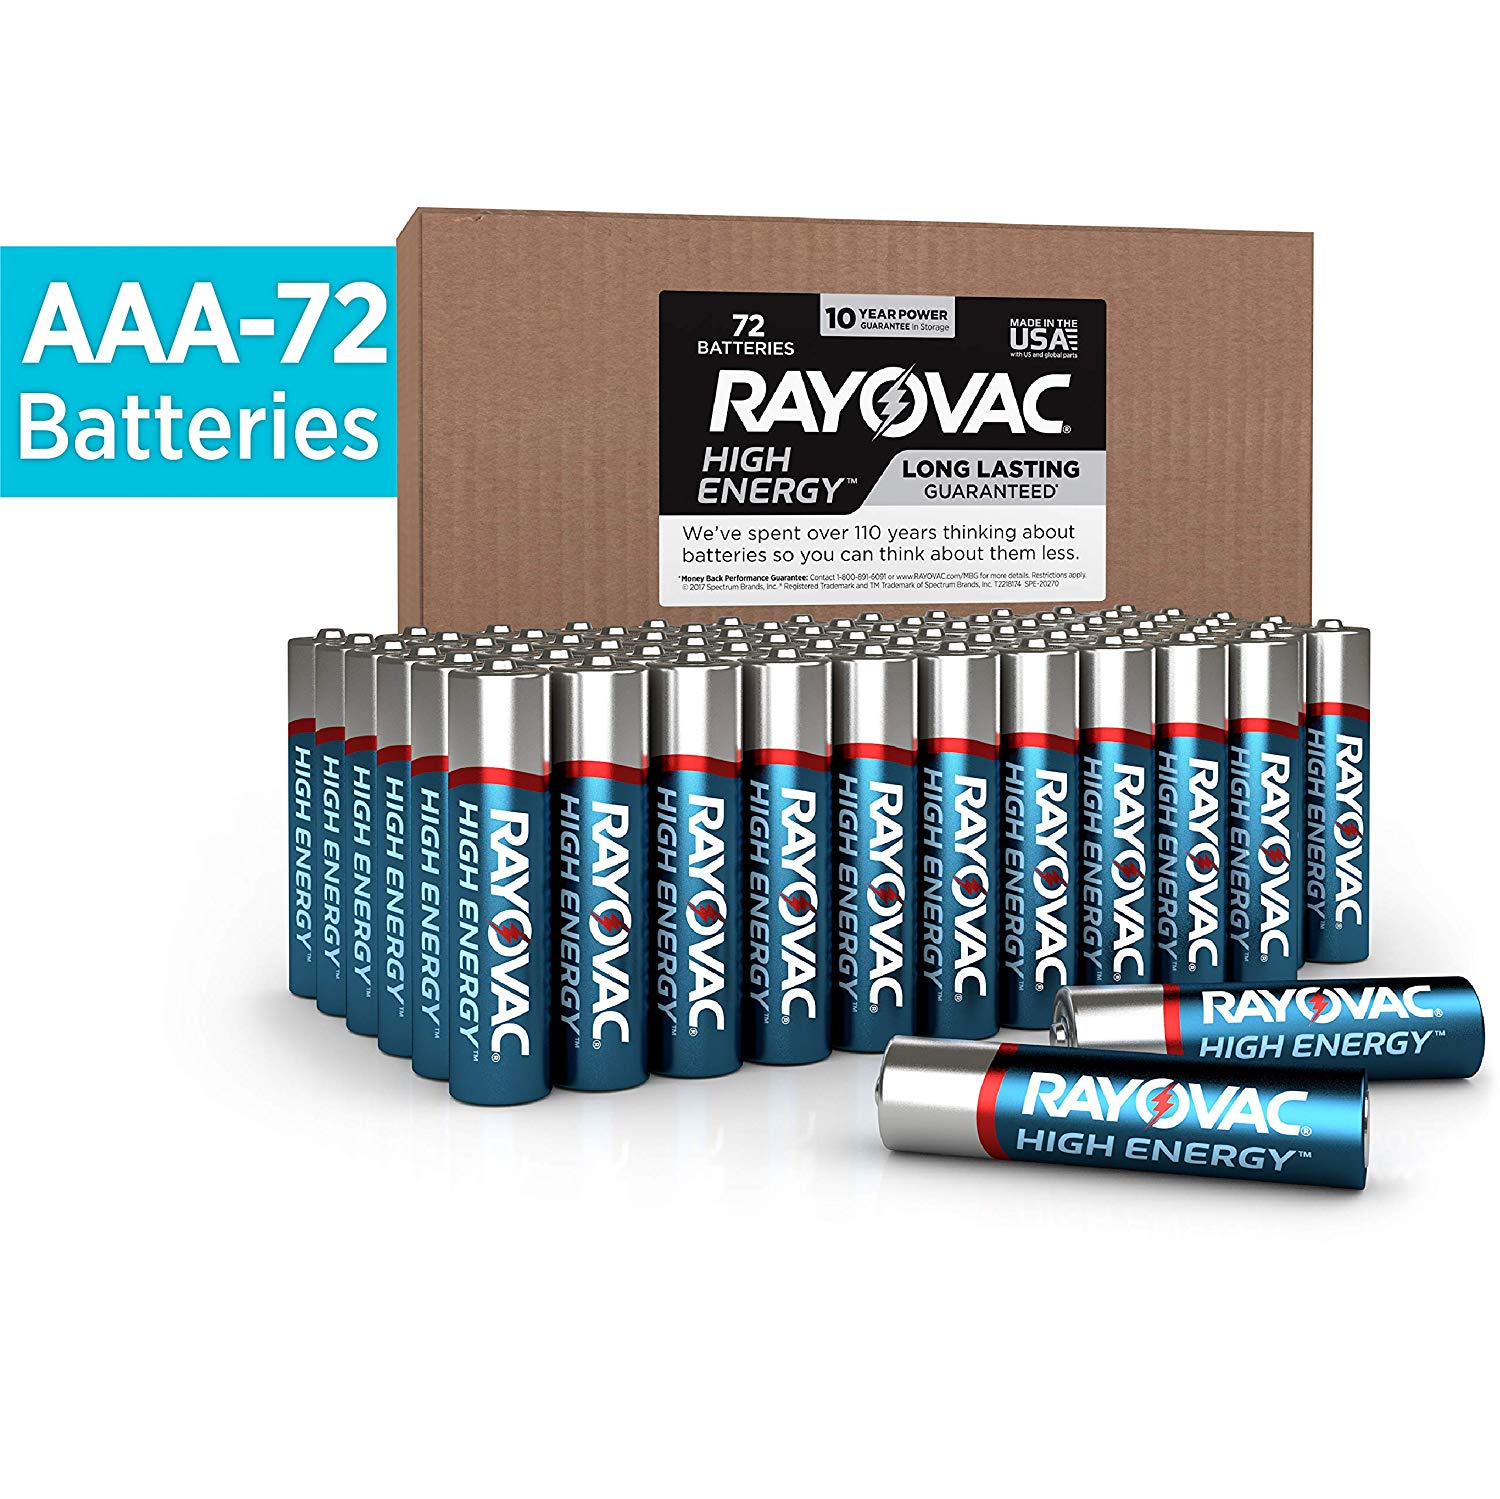 Rayovac AAA Batteries, Alkaline Triple A Batteries (72 Battery Count) $16.54 with Coupon